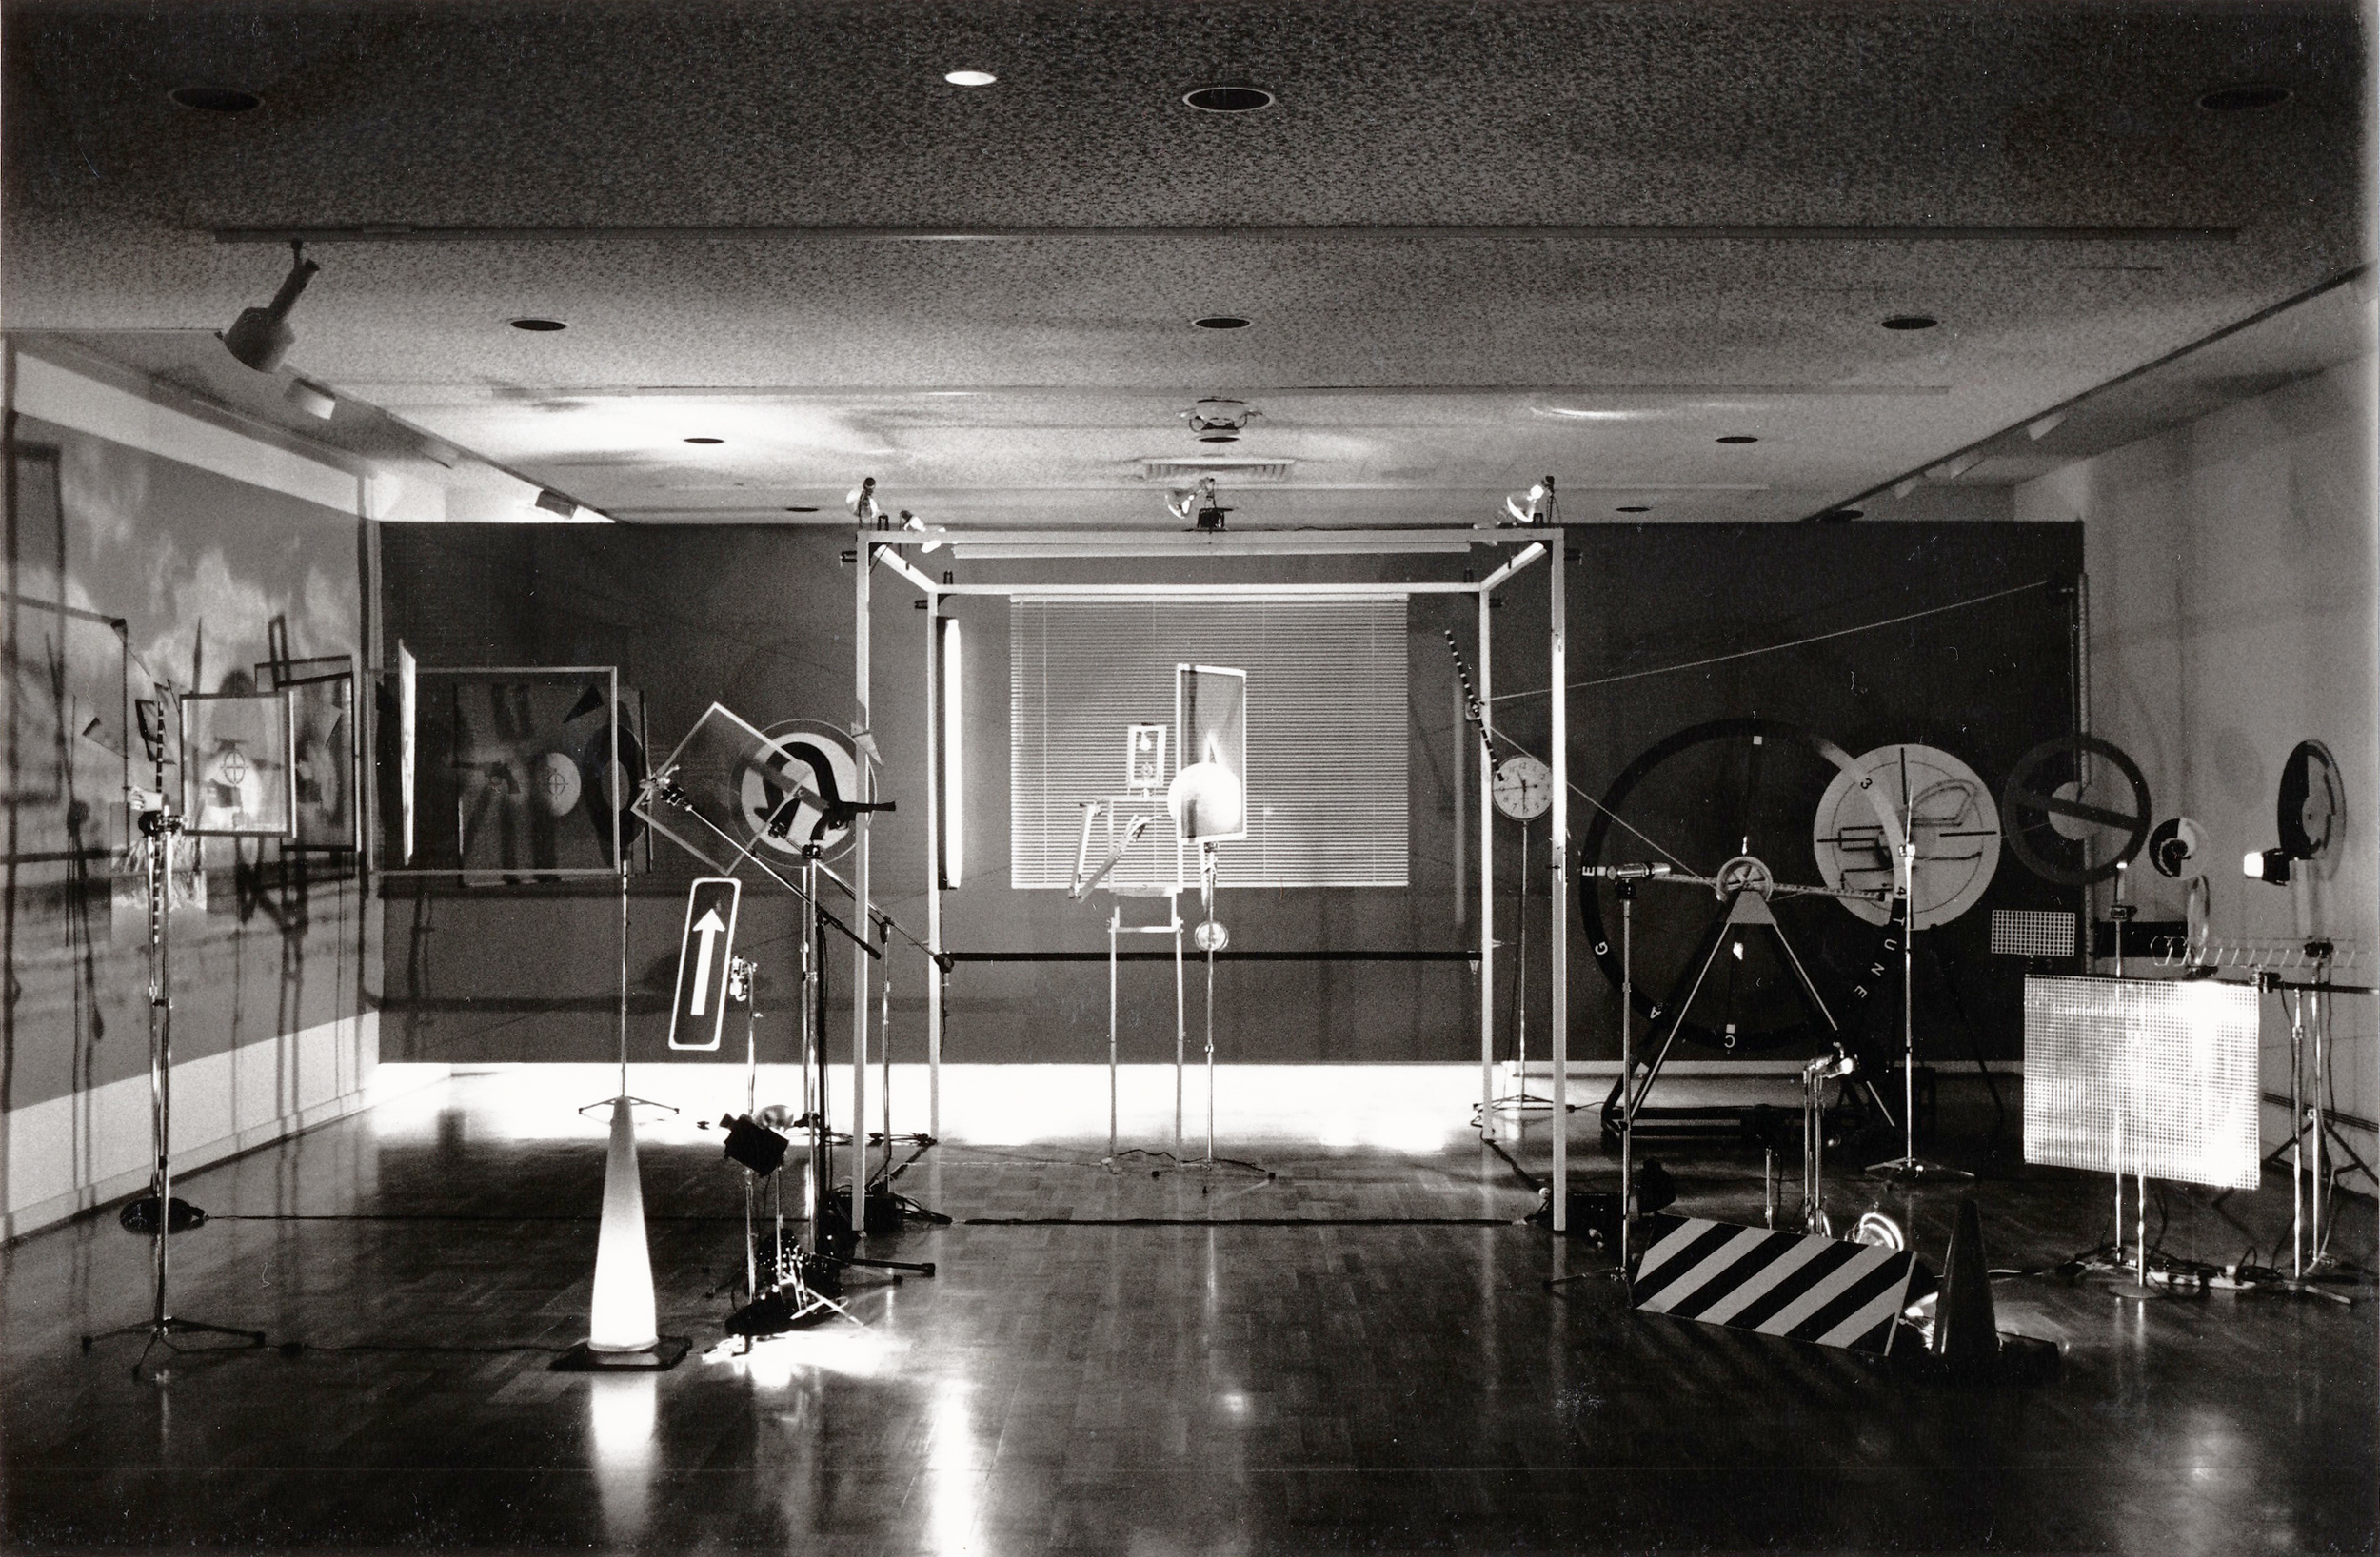 'Positions', Littmann Gallery, Portland, 1984